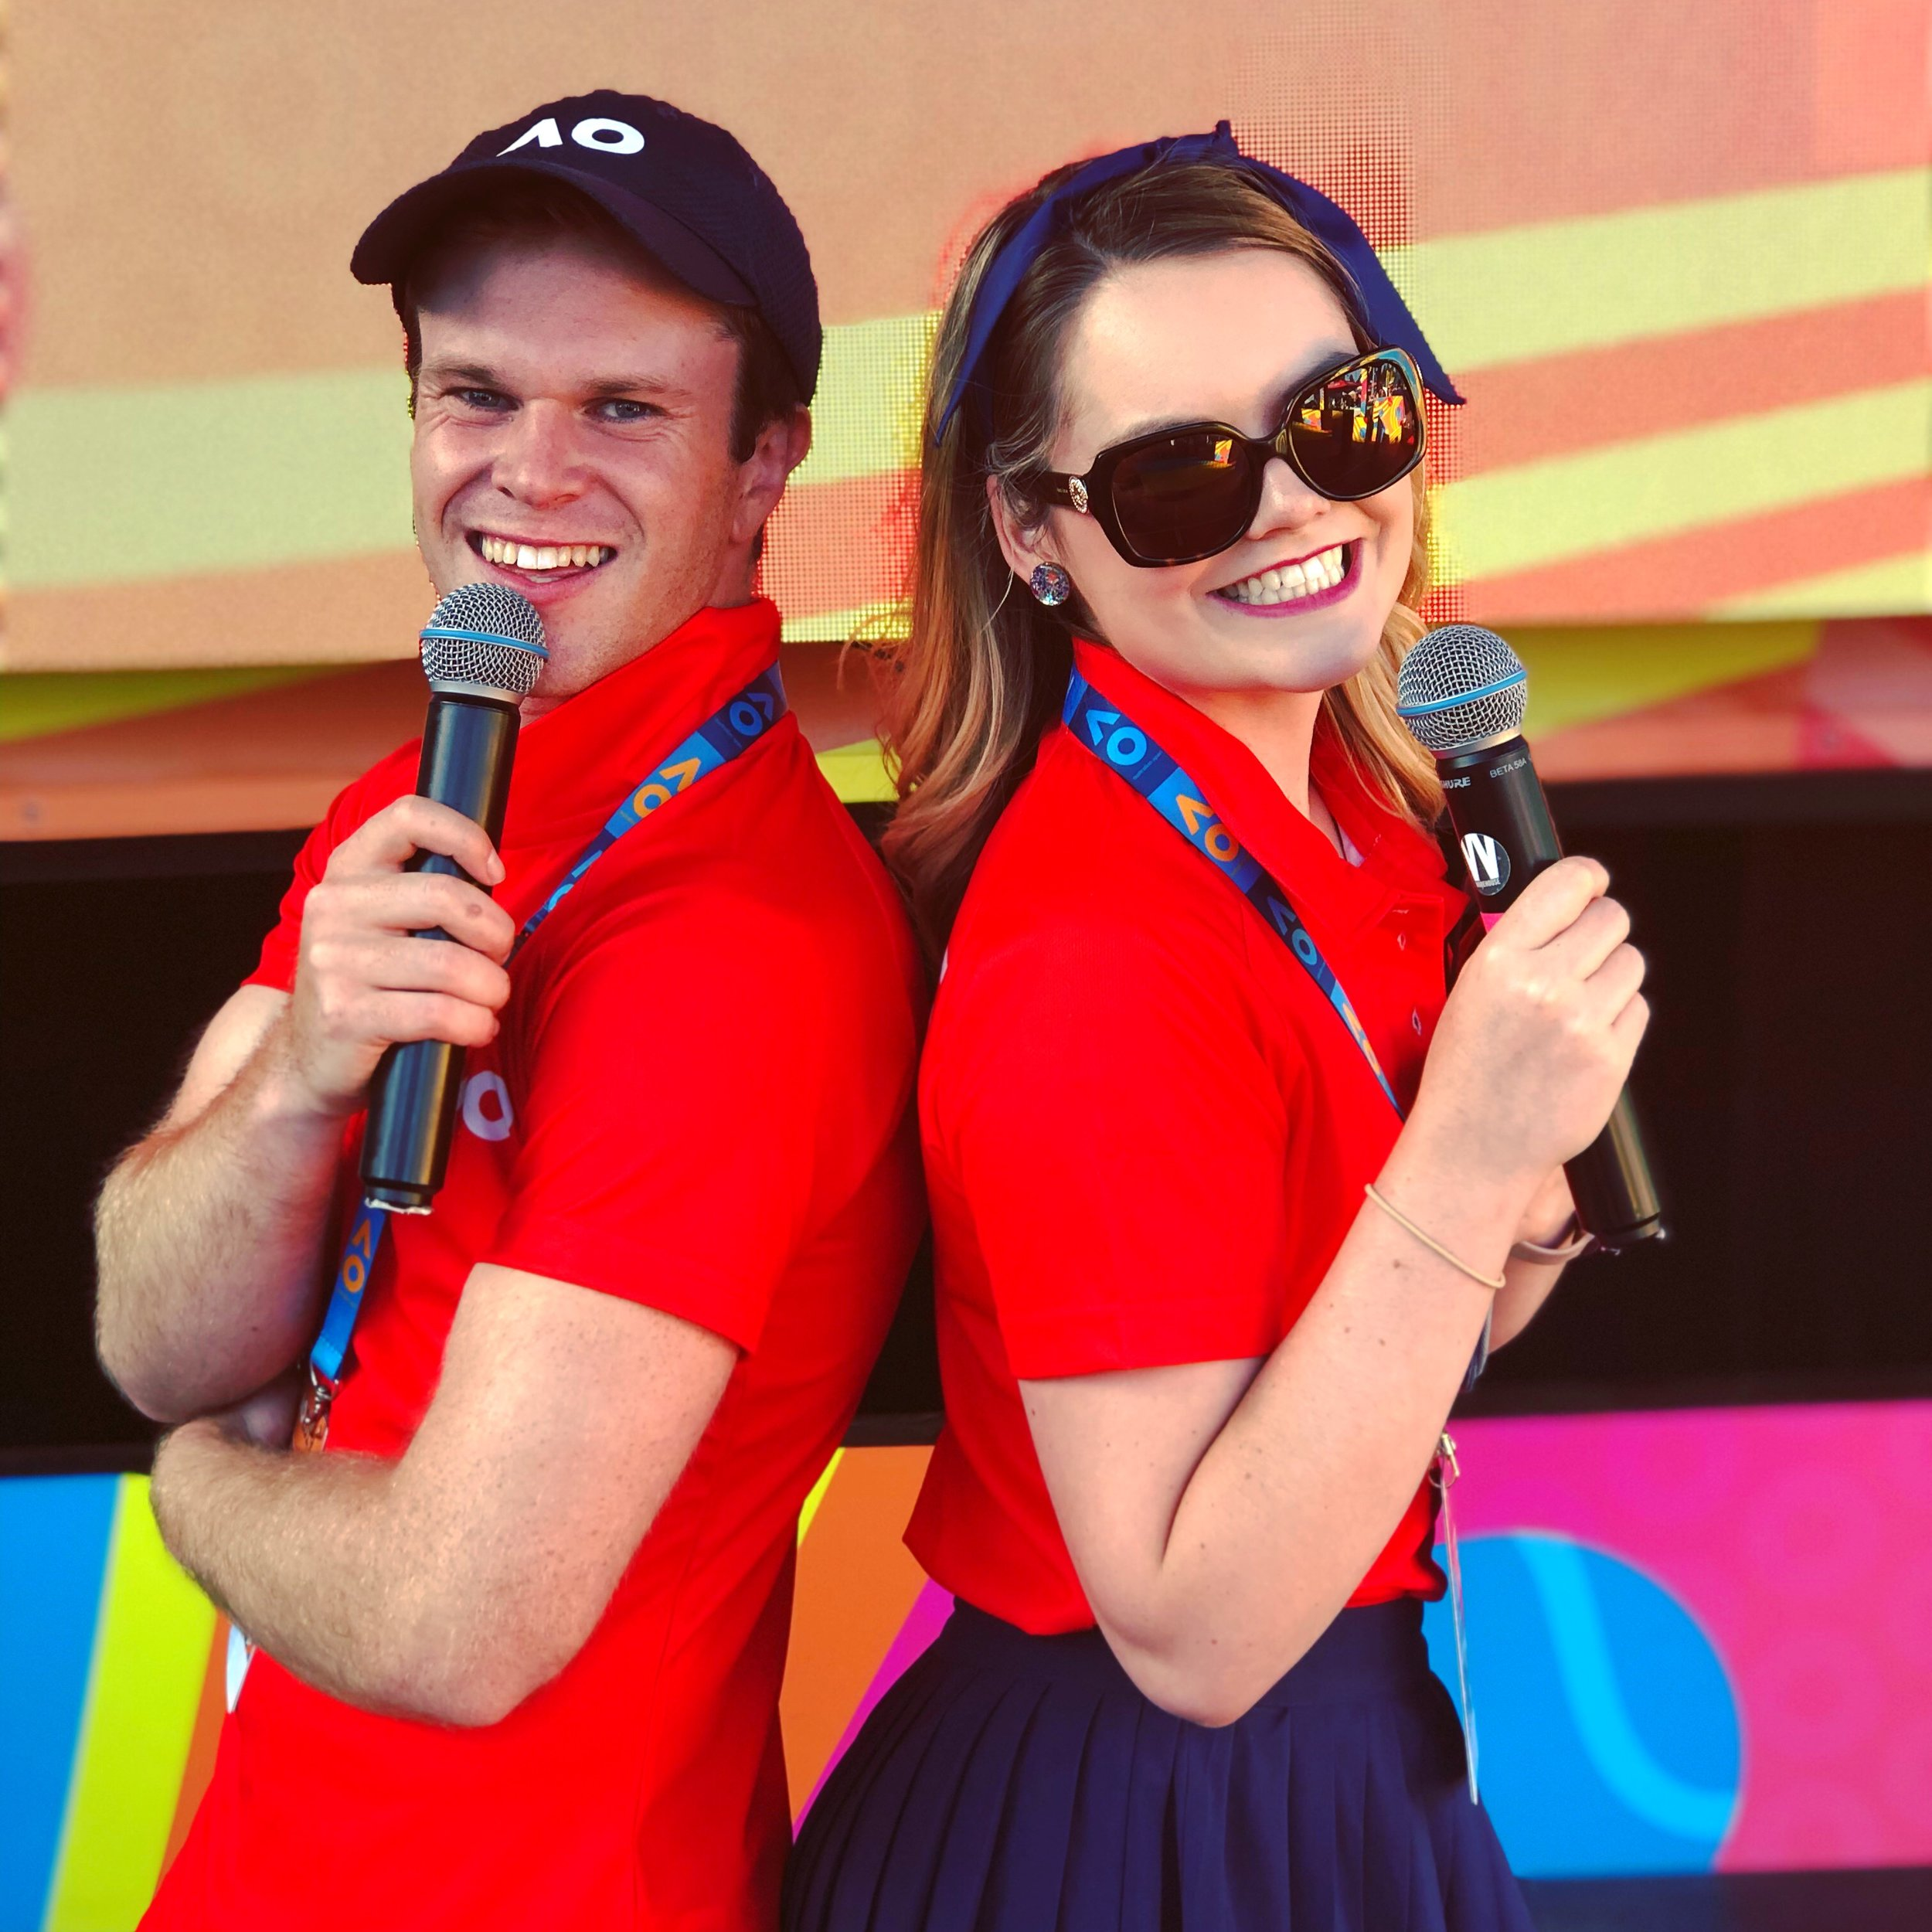 MC, The Australian Open, kids Ballpark 2019